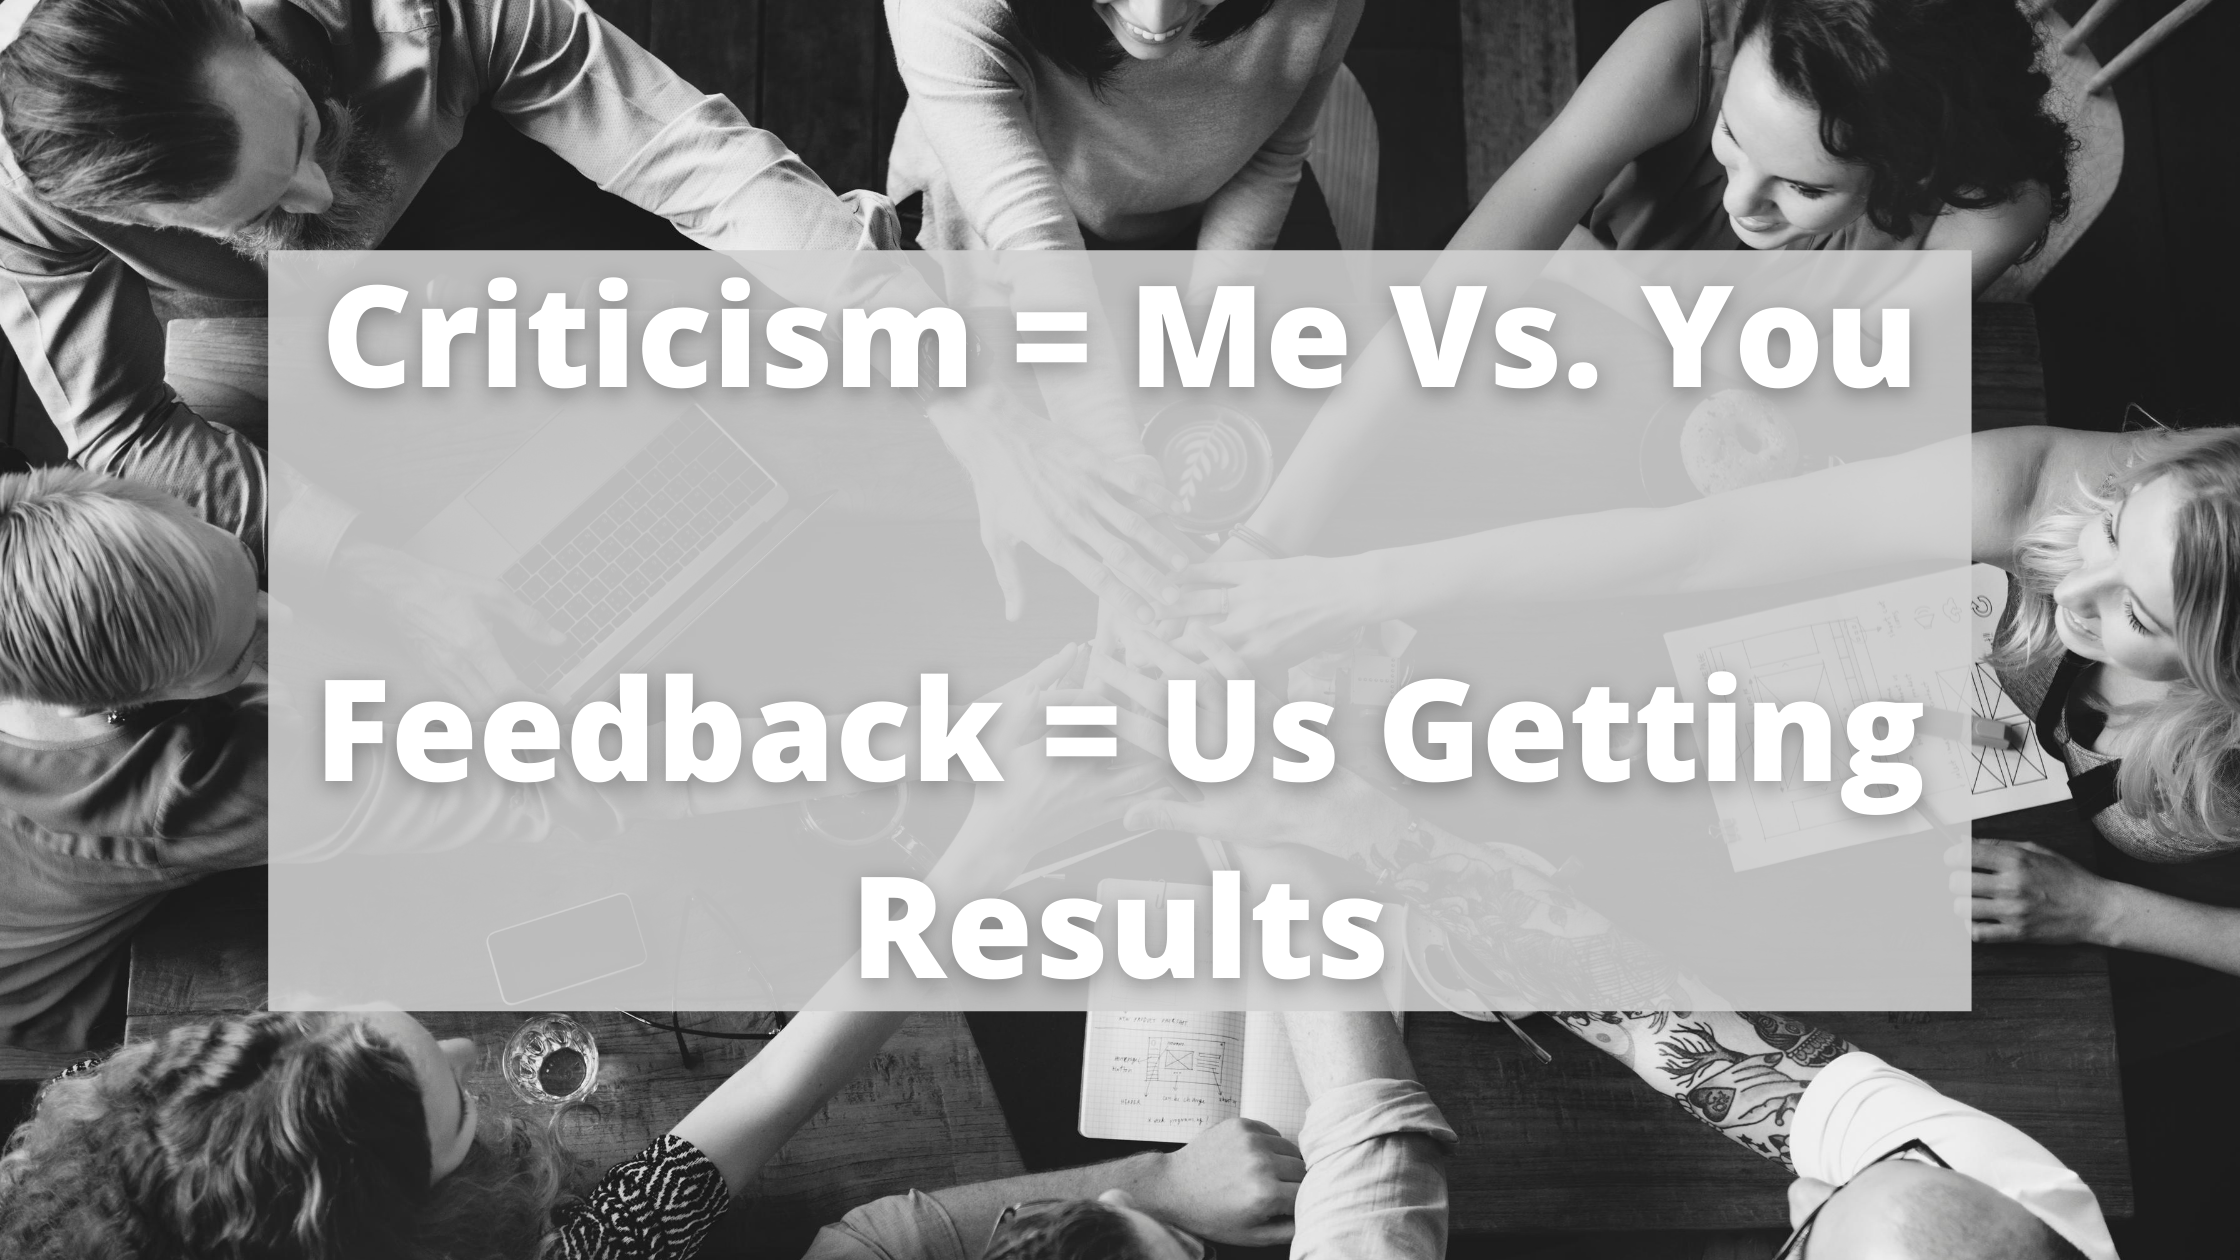 image criticism vs feedback graphic